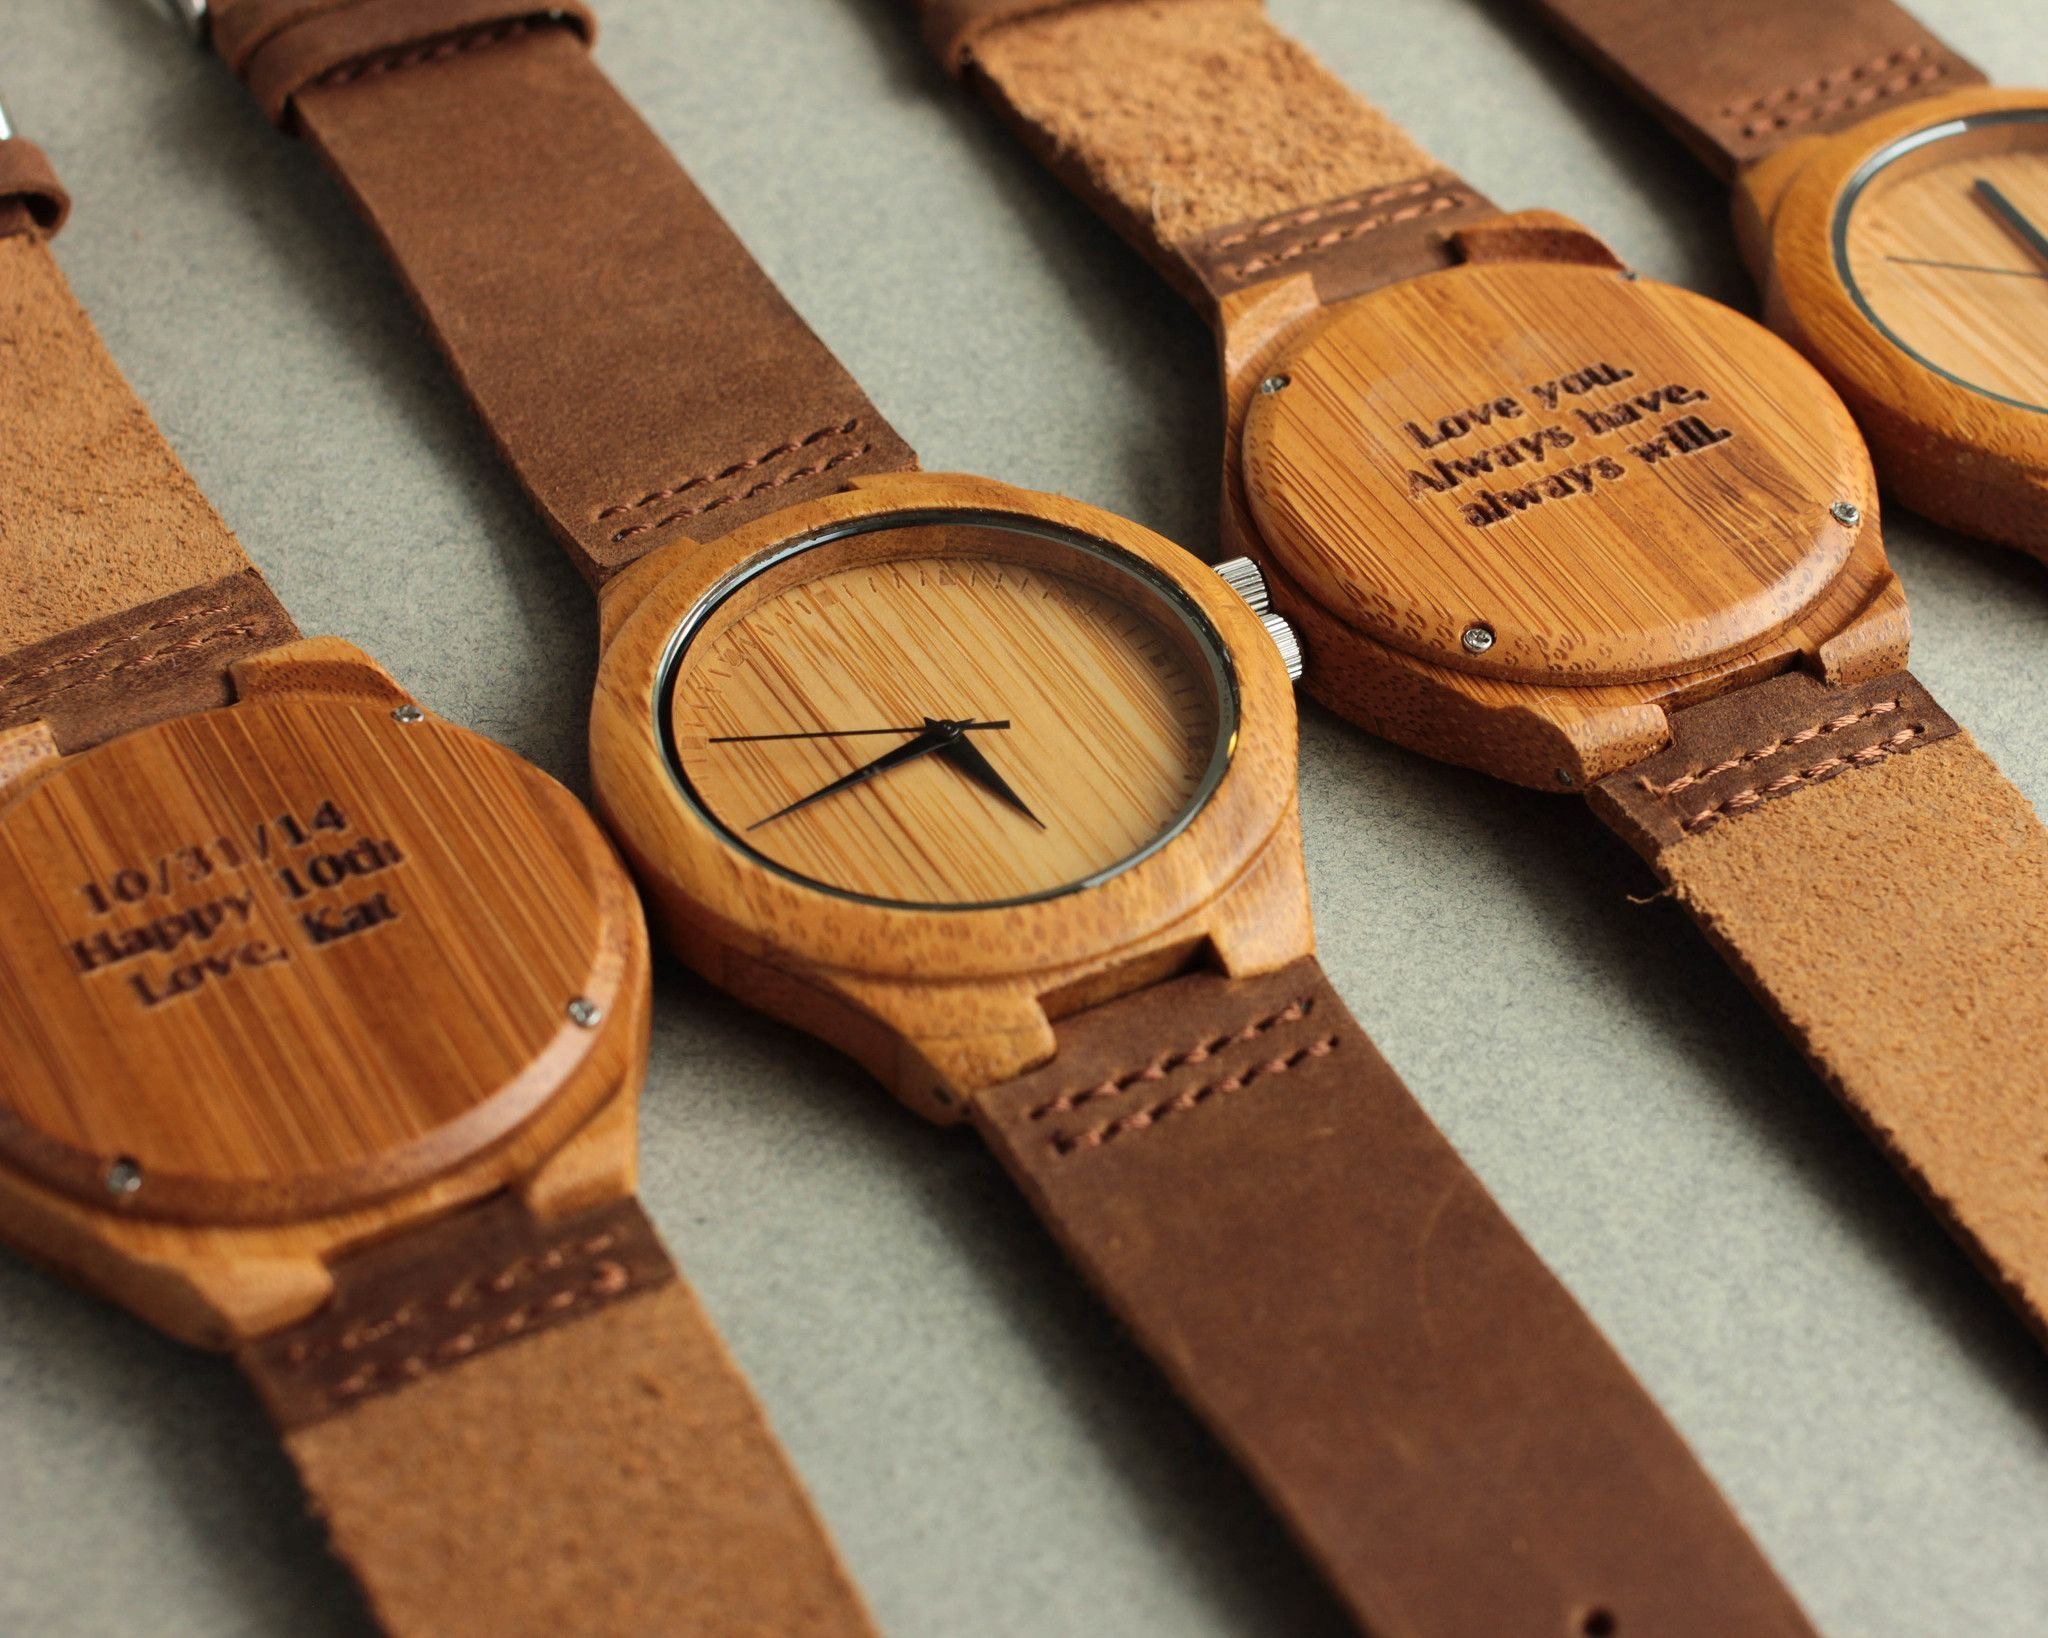 sets wooden wedding home wood custom gift gifts watch dp for customized watches party wristwatch audio com bamboo personalized amazon theater groomsmen